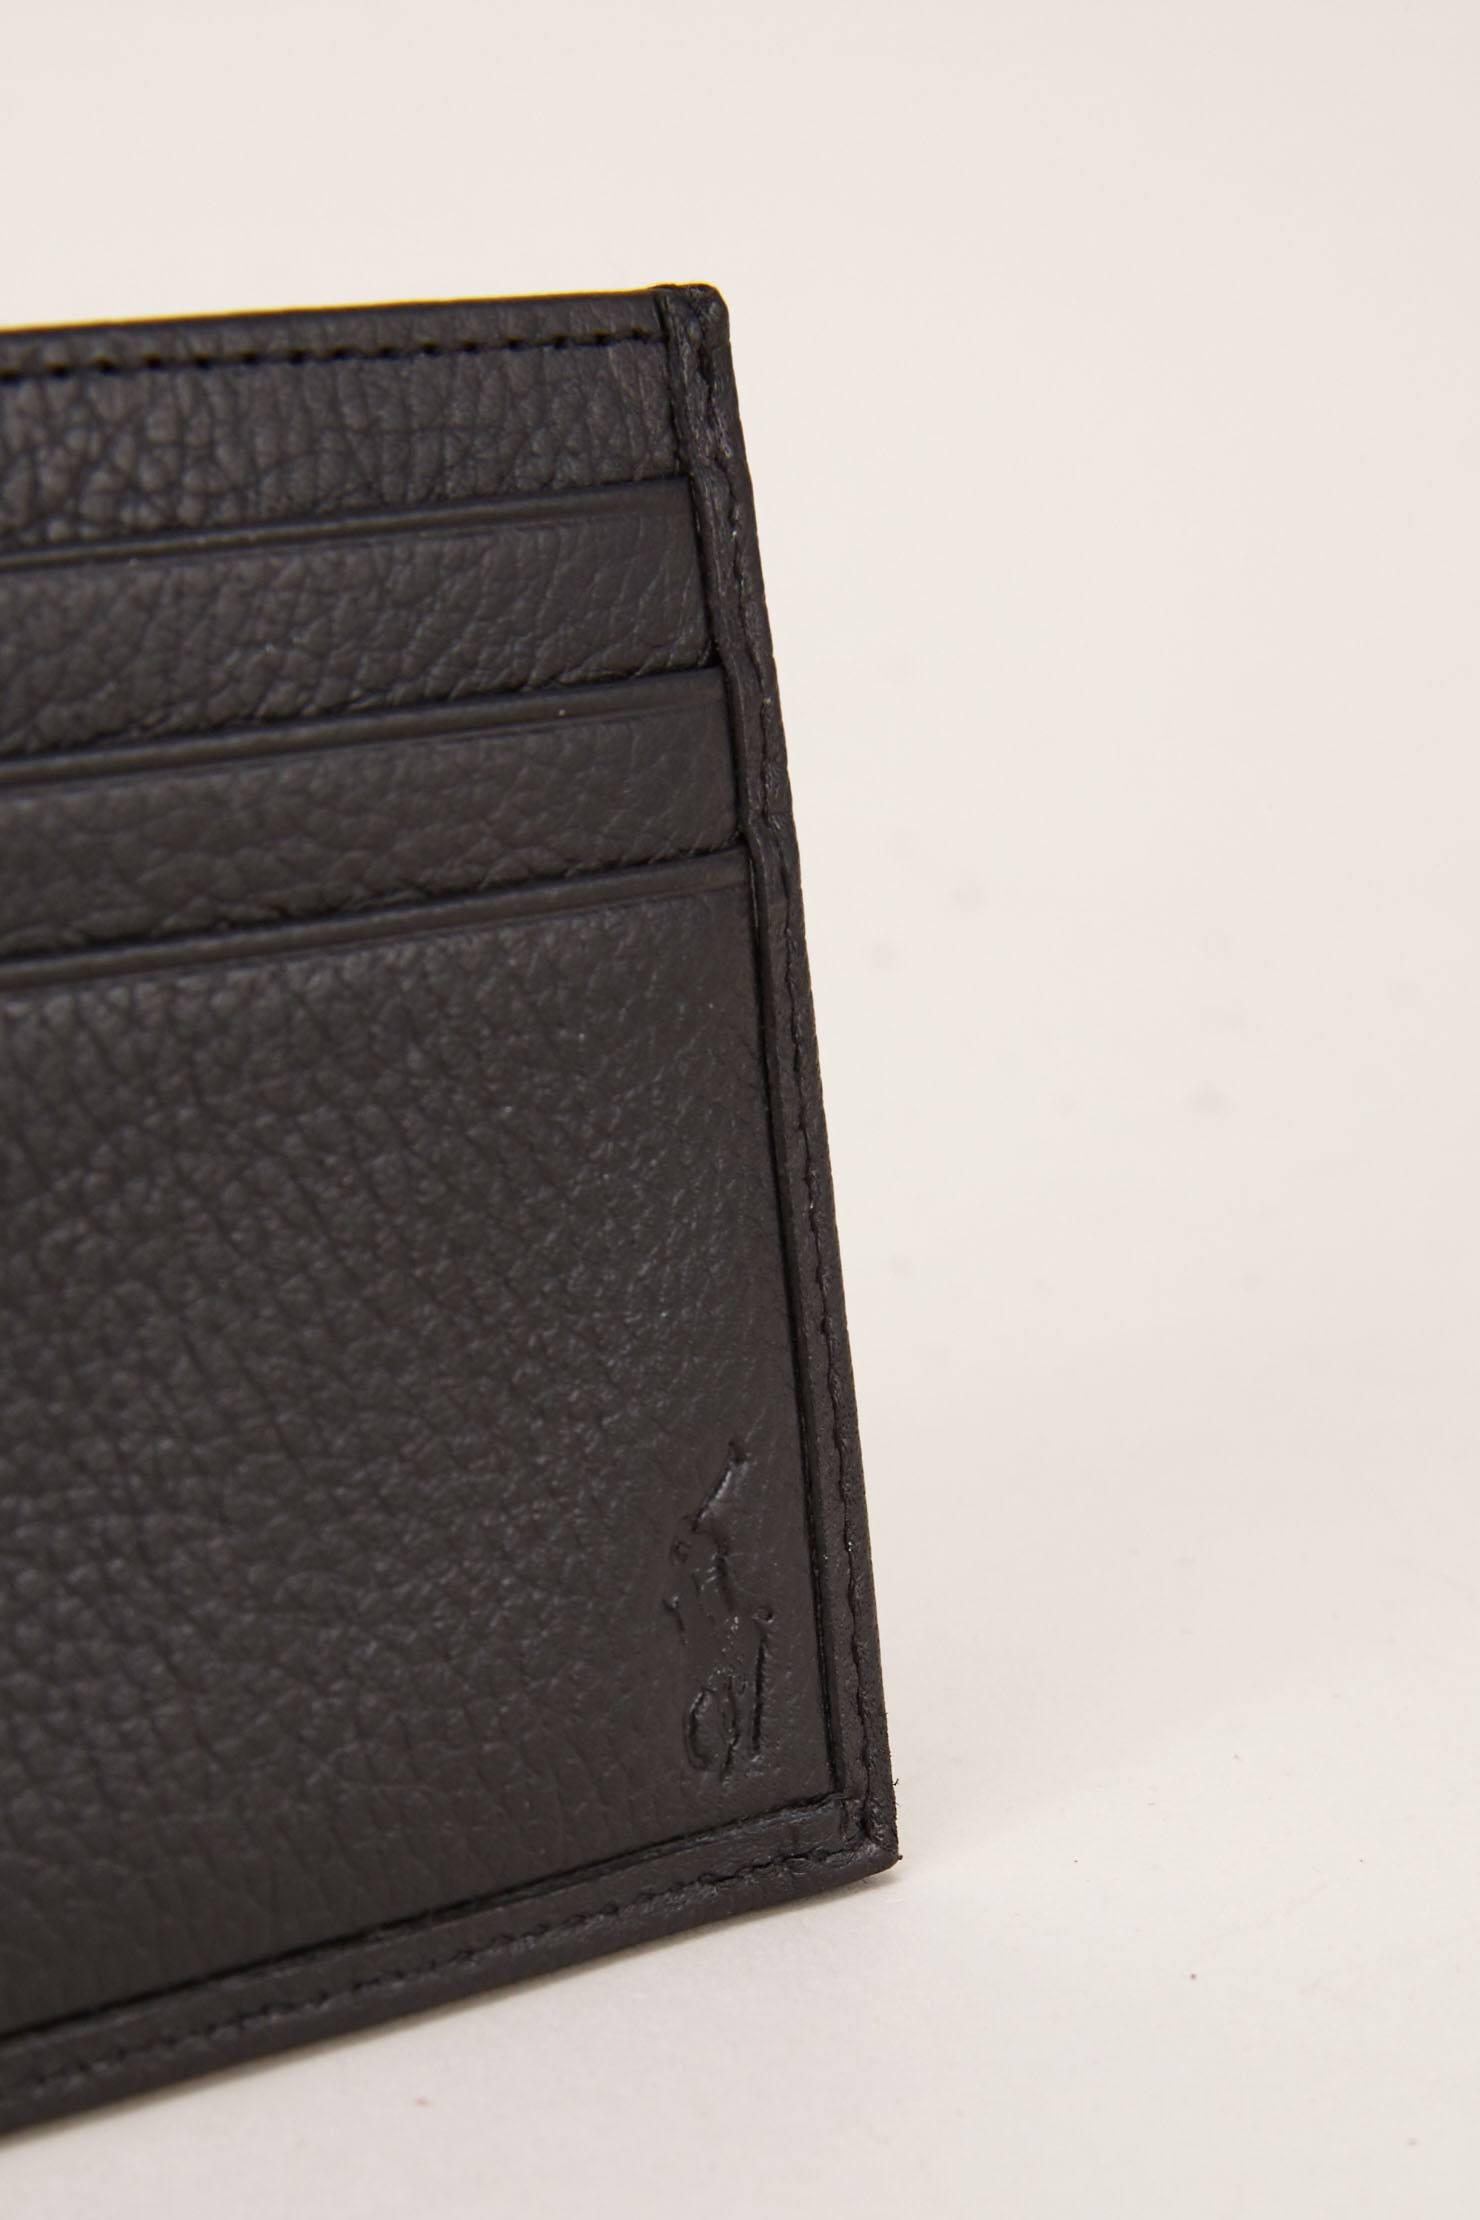 Lyst polo ralph lauren business card holder in black for men polo ralph lauren black business card holder for men lyst view fullscreen colourmoves